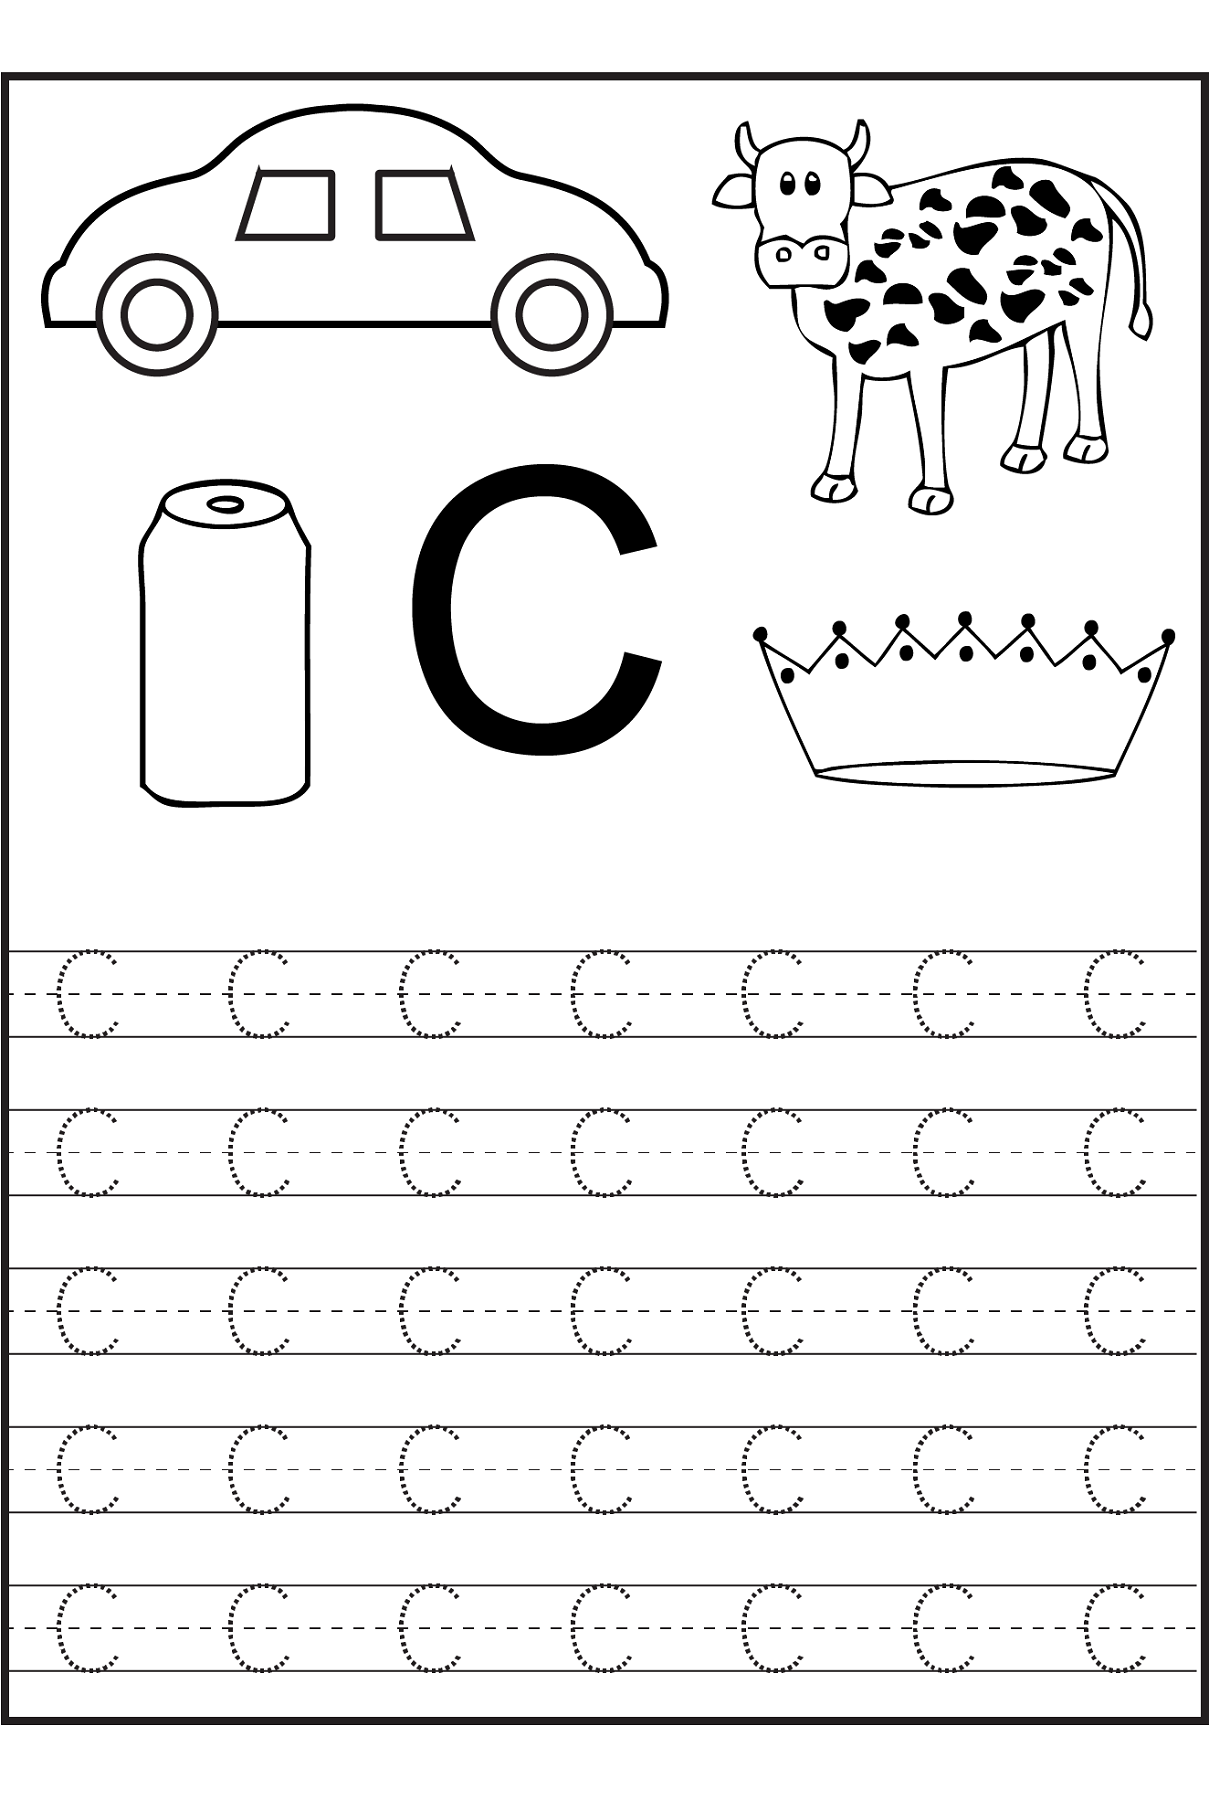 Trace The Letter C Worksheets | Preschool Worksheets for Letter C Worksheets For 3 Year Olds